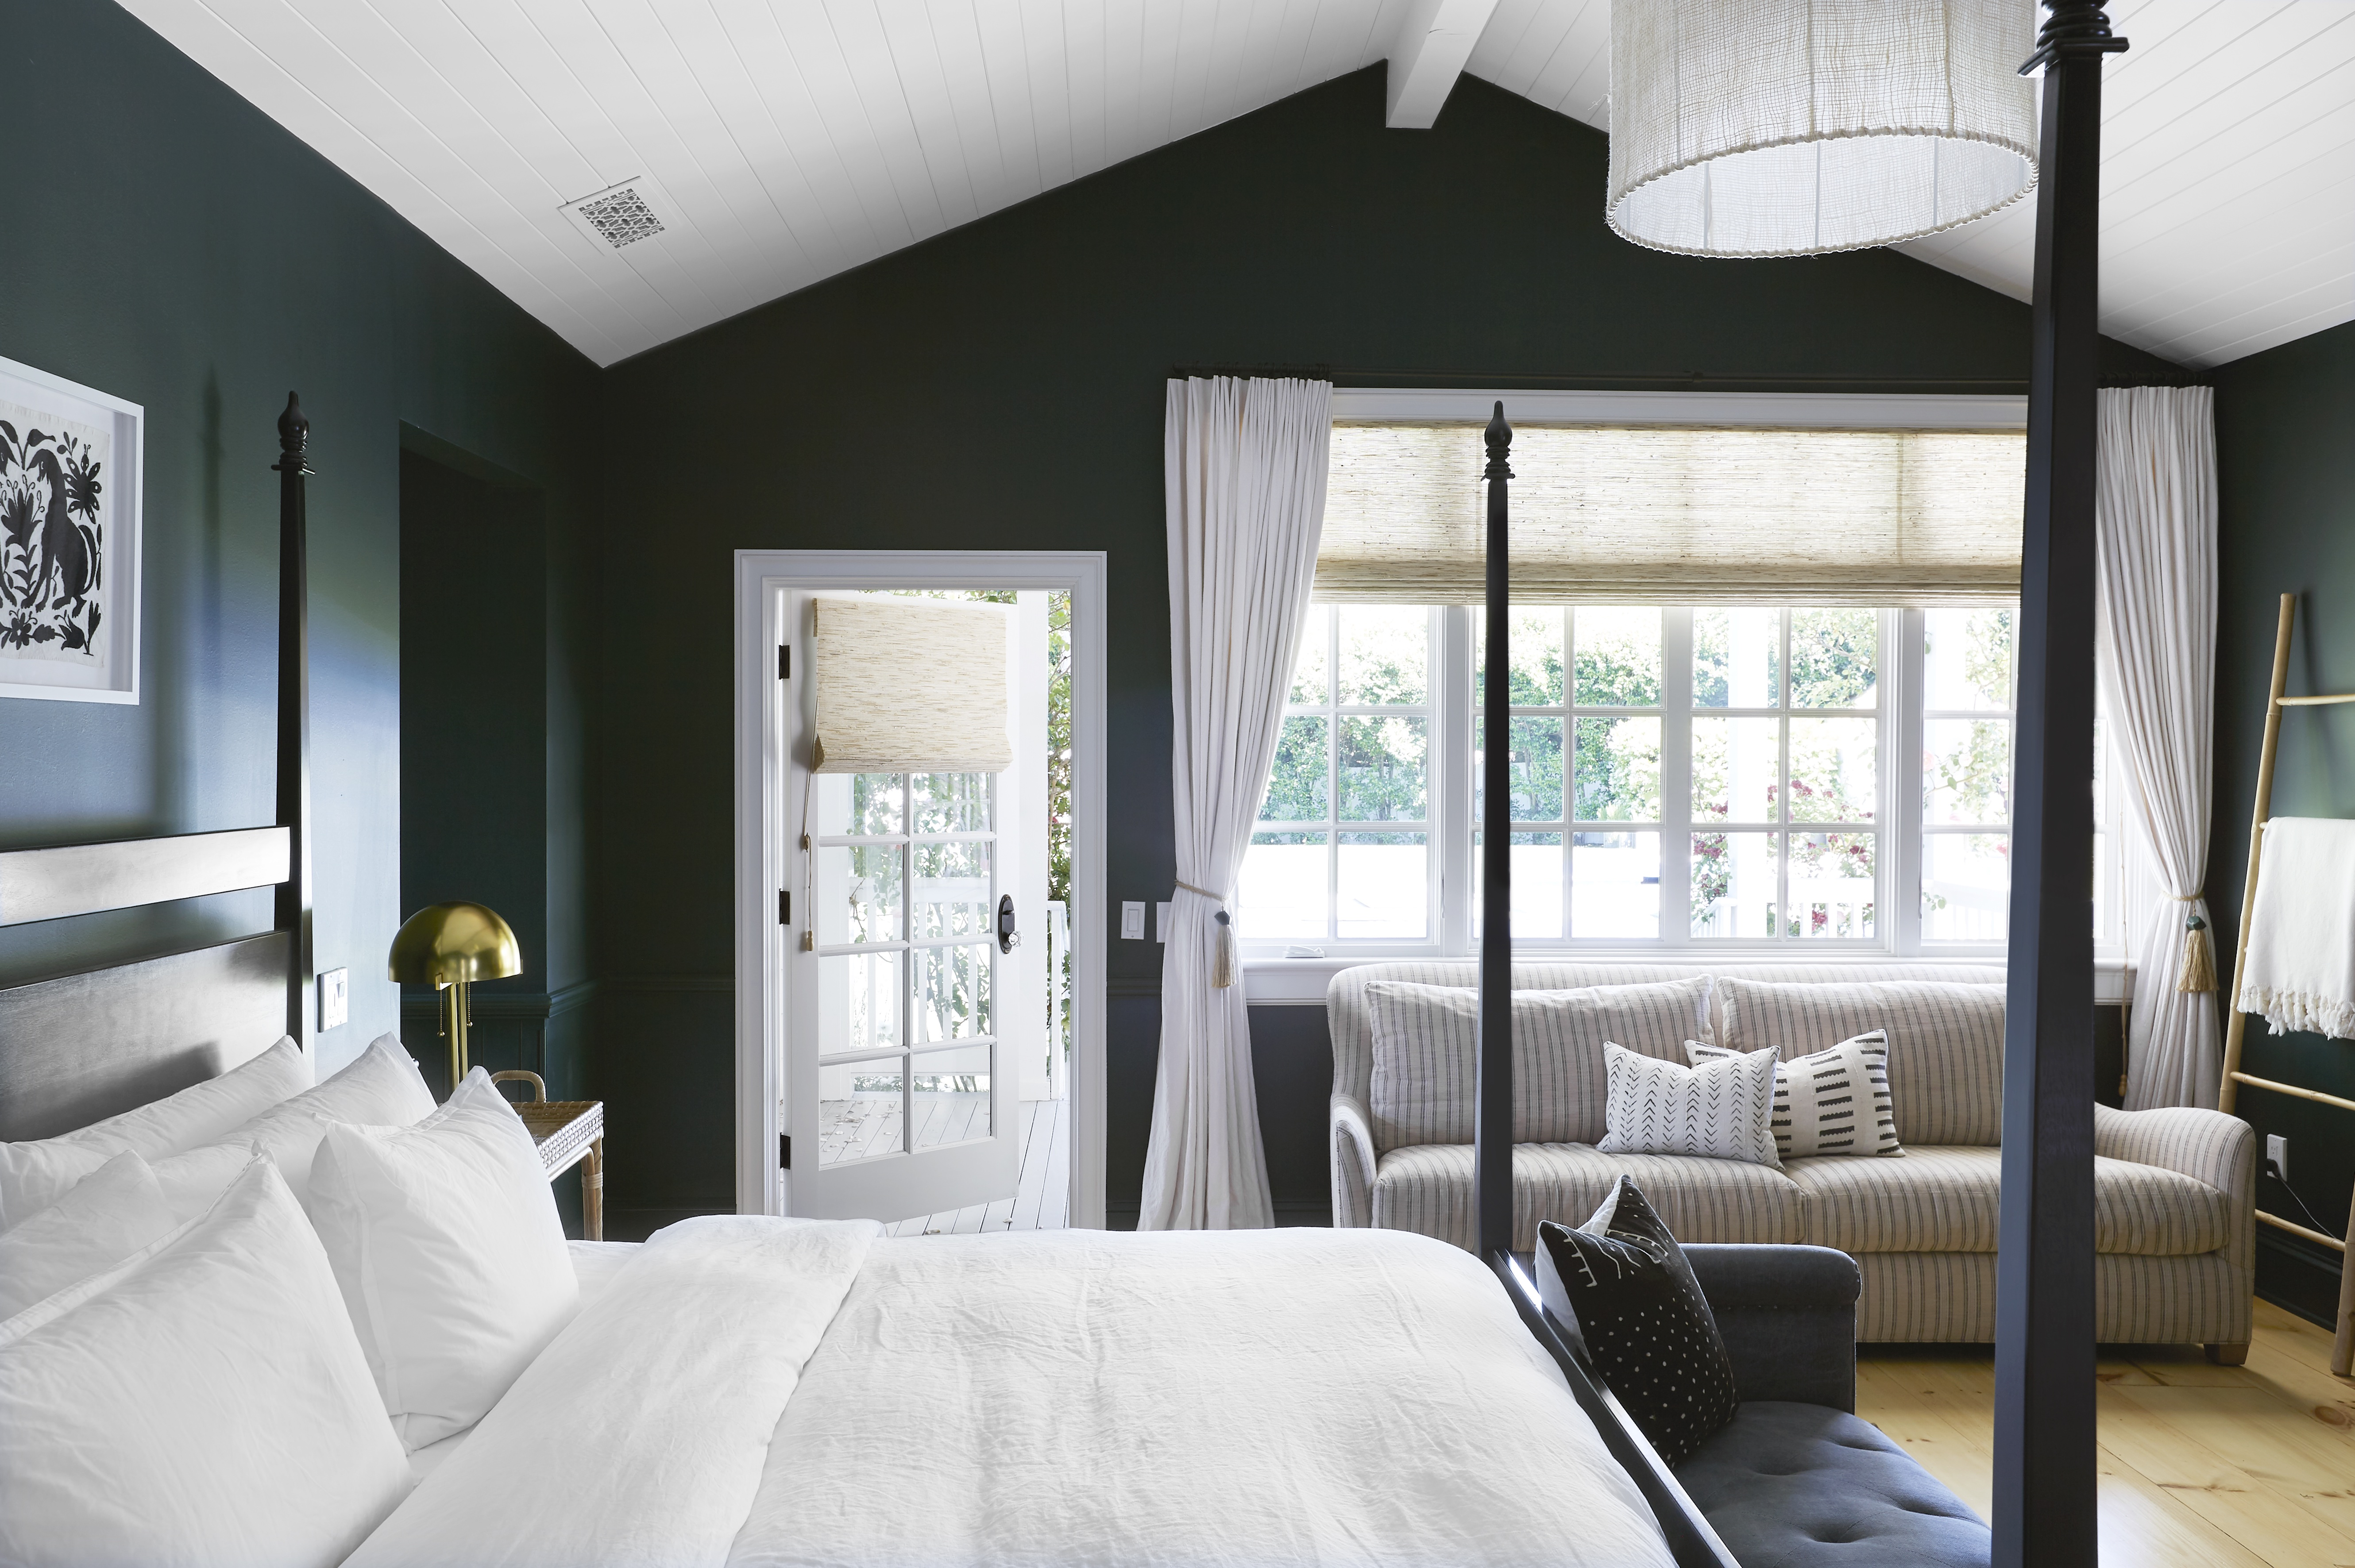 Pair large window coverings, like woven woods and drapery to add privacy to a bedroom